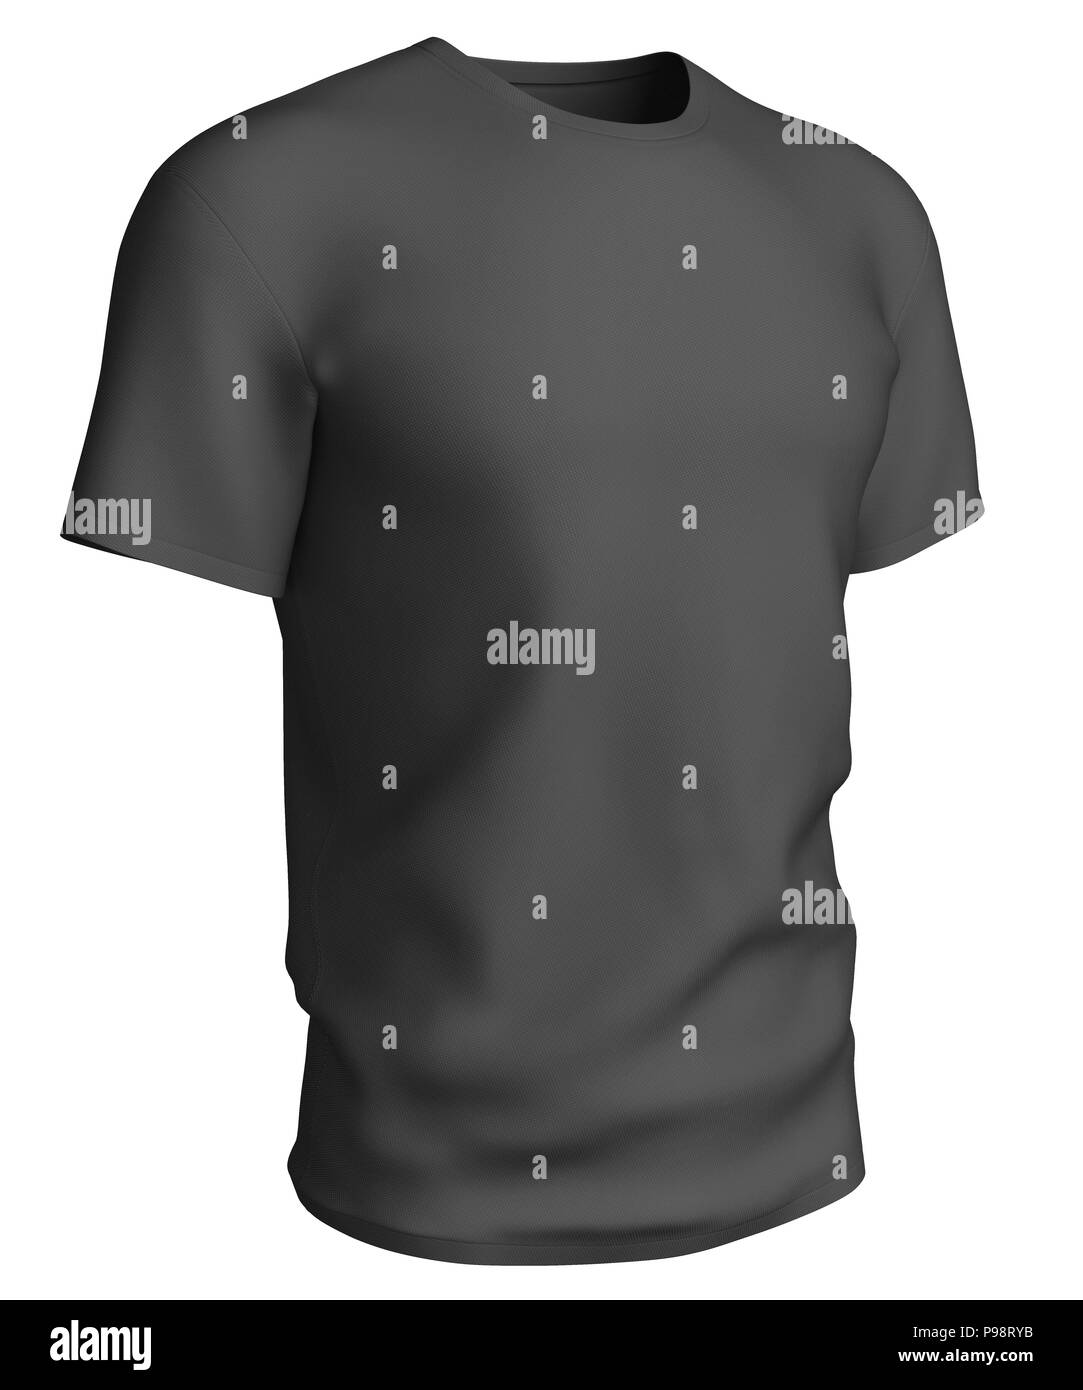 Man Black T Shirt Design Template Isolated On White Background